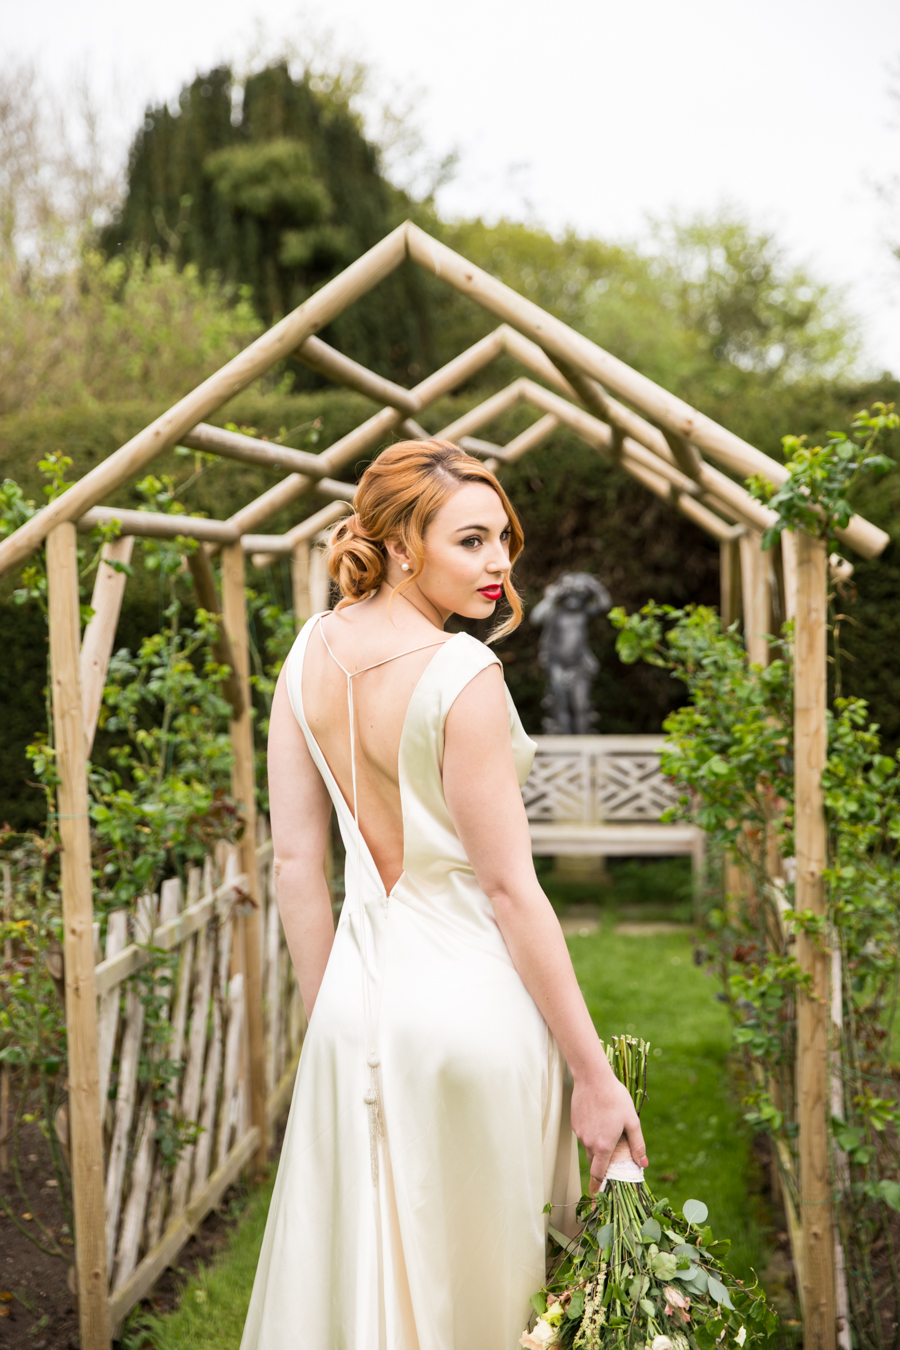 English country garden wedding style ideas with Hannah Larkin Photography (30)